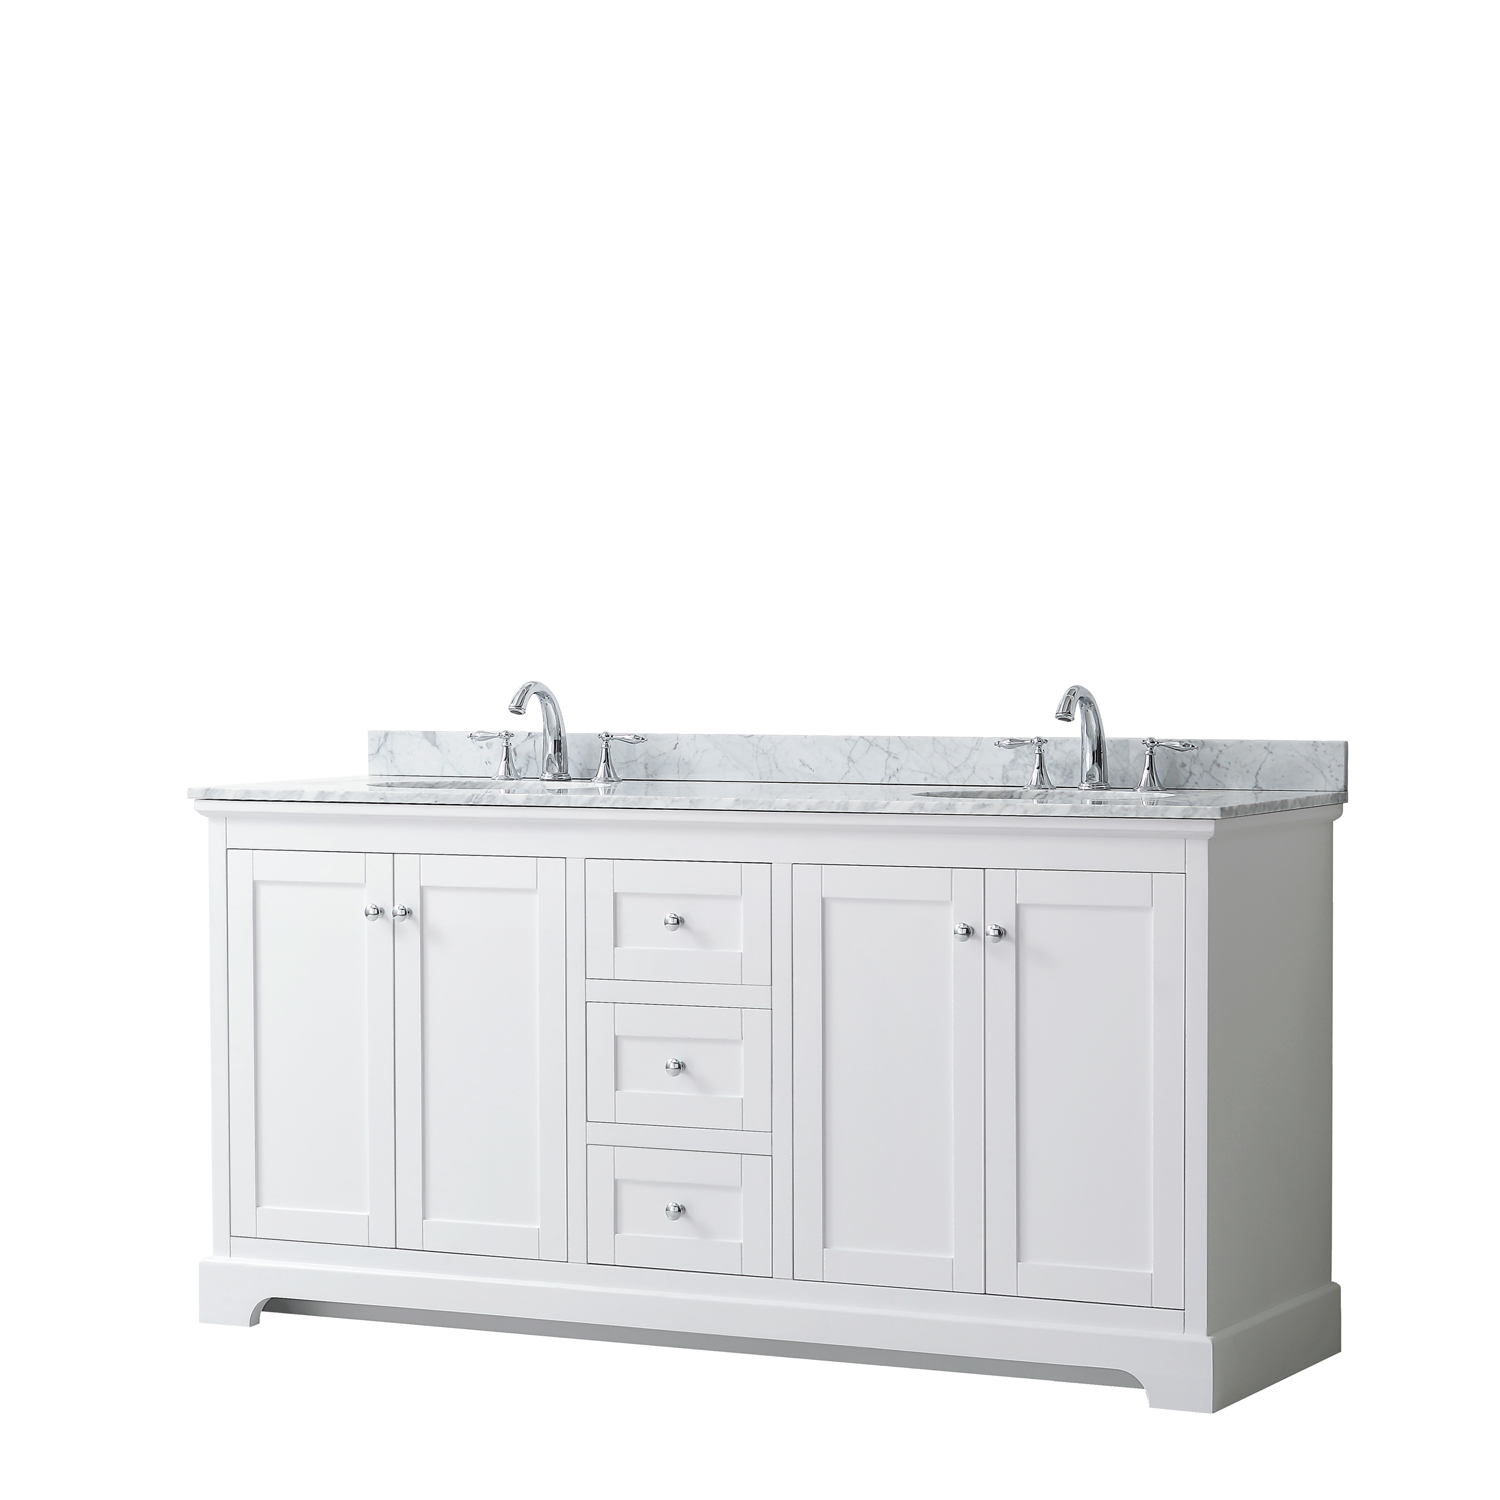 "72"" Double Bathroom Vanity in White, No Countertop, No Sinks, and No Mirror"